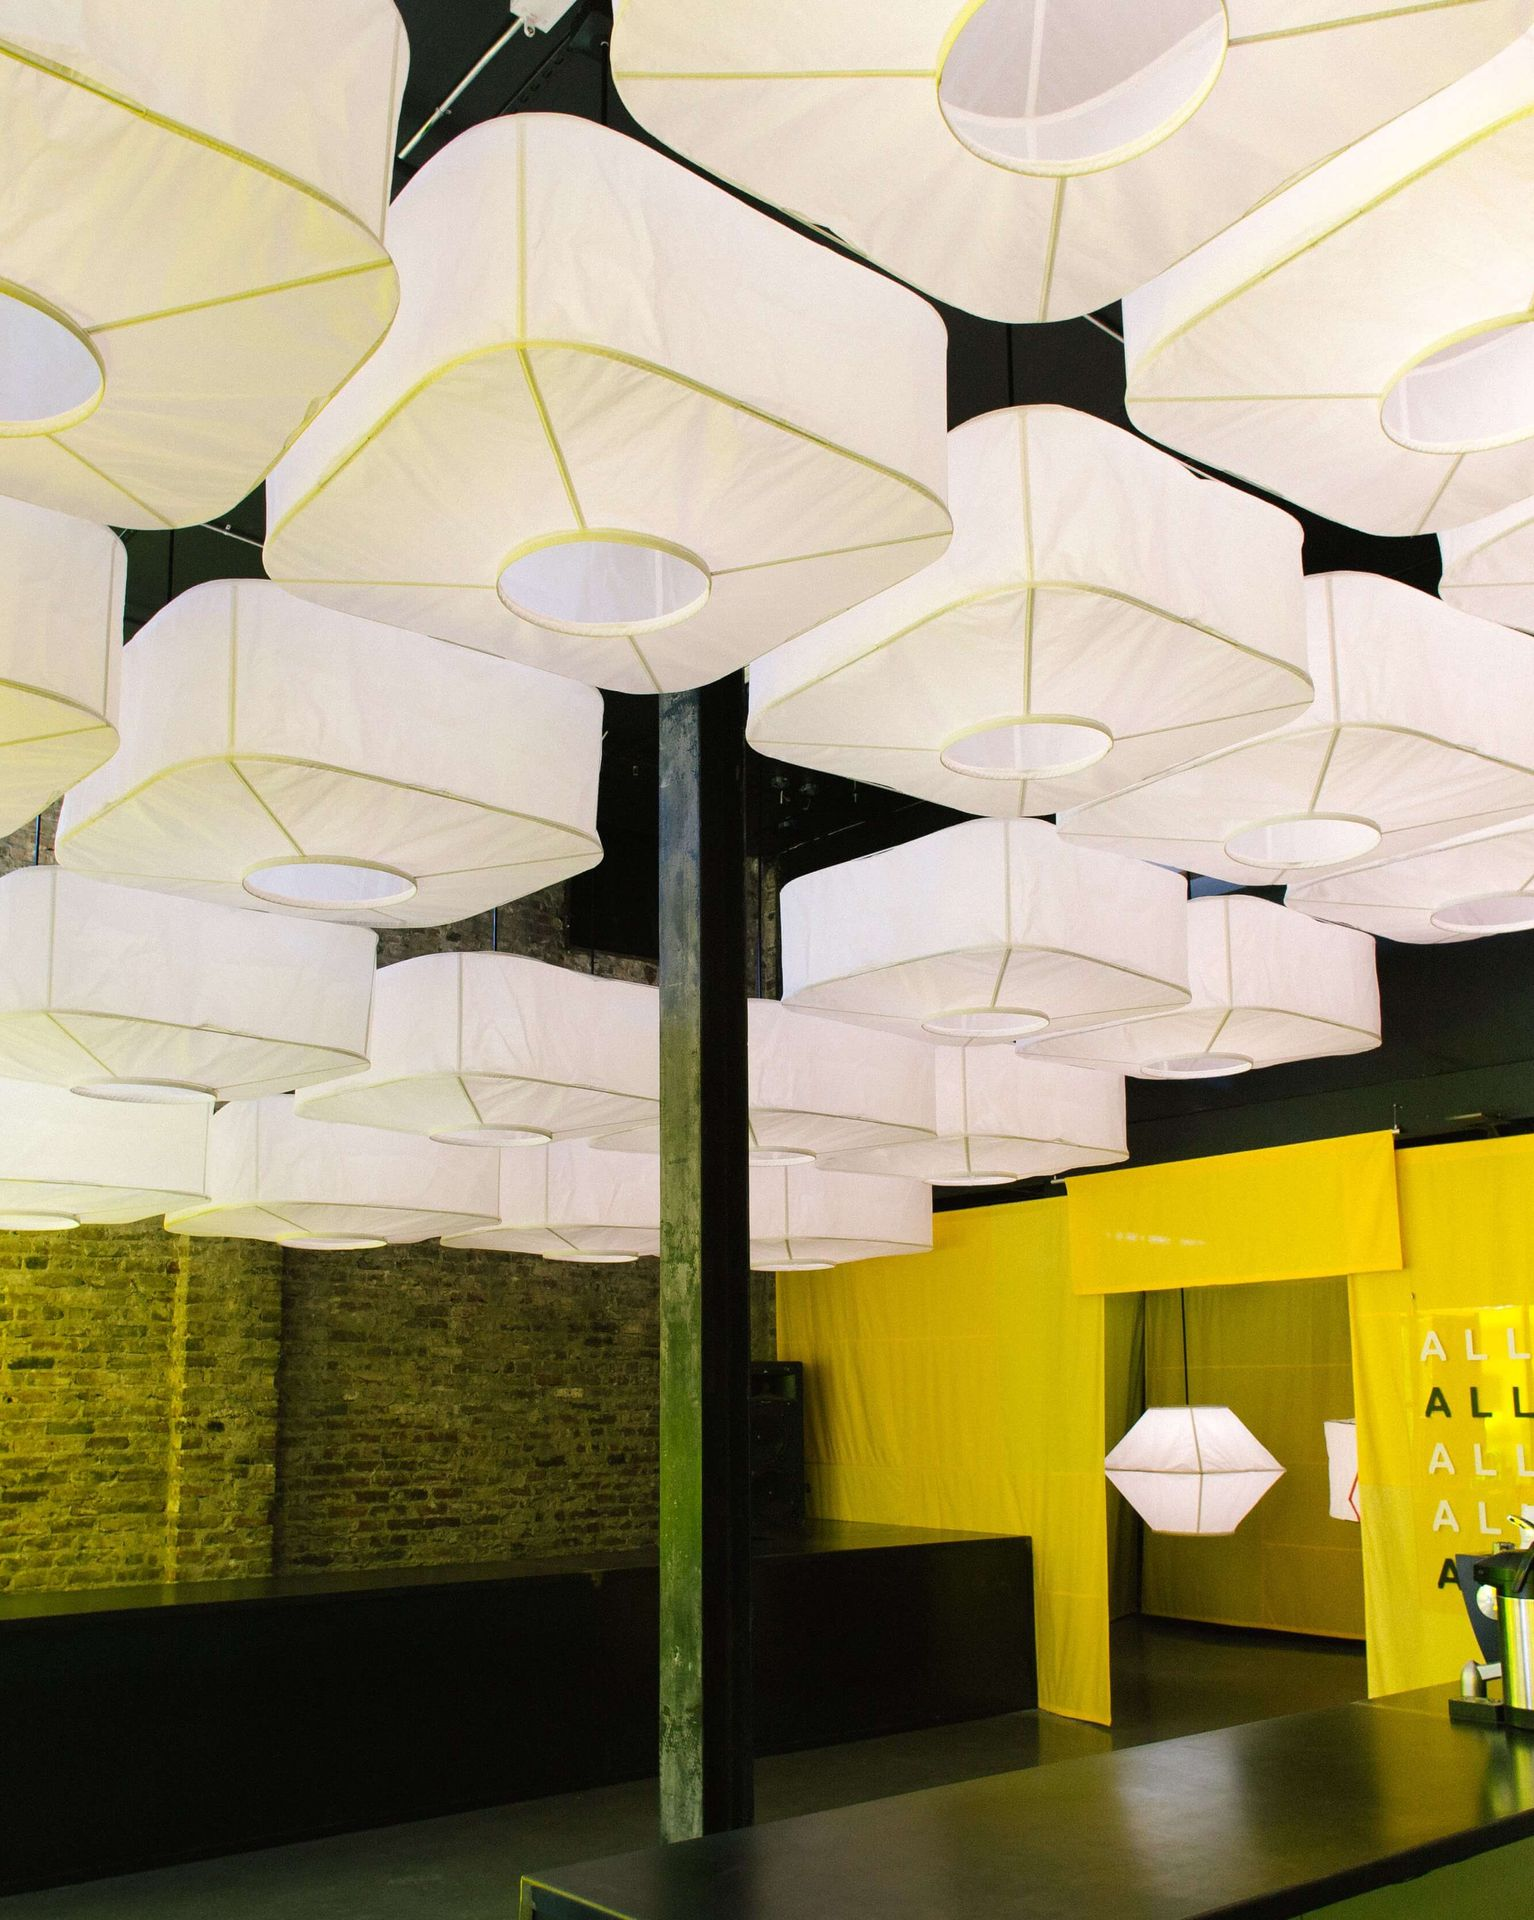 AllSew, a modular, scalable pendant inspired by the luminosity of lanterns, and the lightweight, collapsible efficiency of kites.